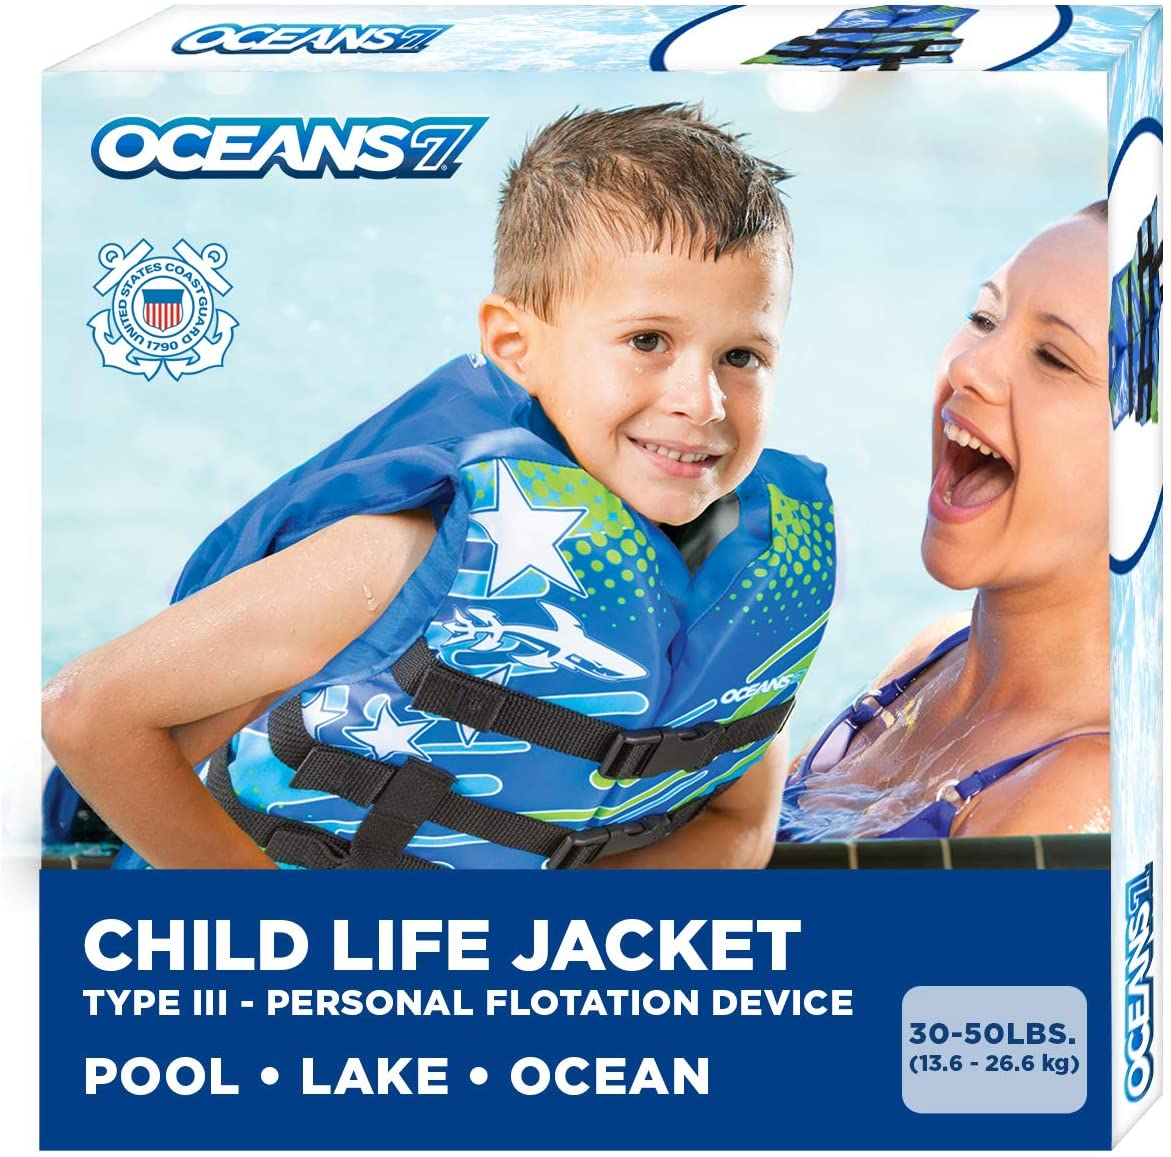 New & ImprovedOceans7 US Coast Guard Approved, Child Life Jacket, Flex-Form Chest, Open-Sided Design, Type III Vest, PFD, Personal Flotation Device, Blue/White